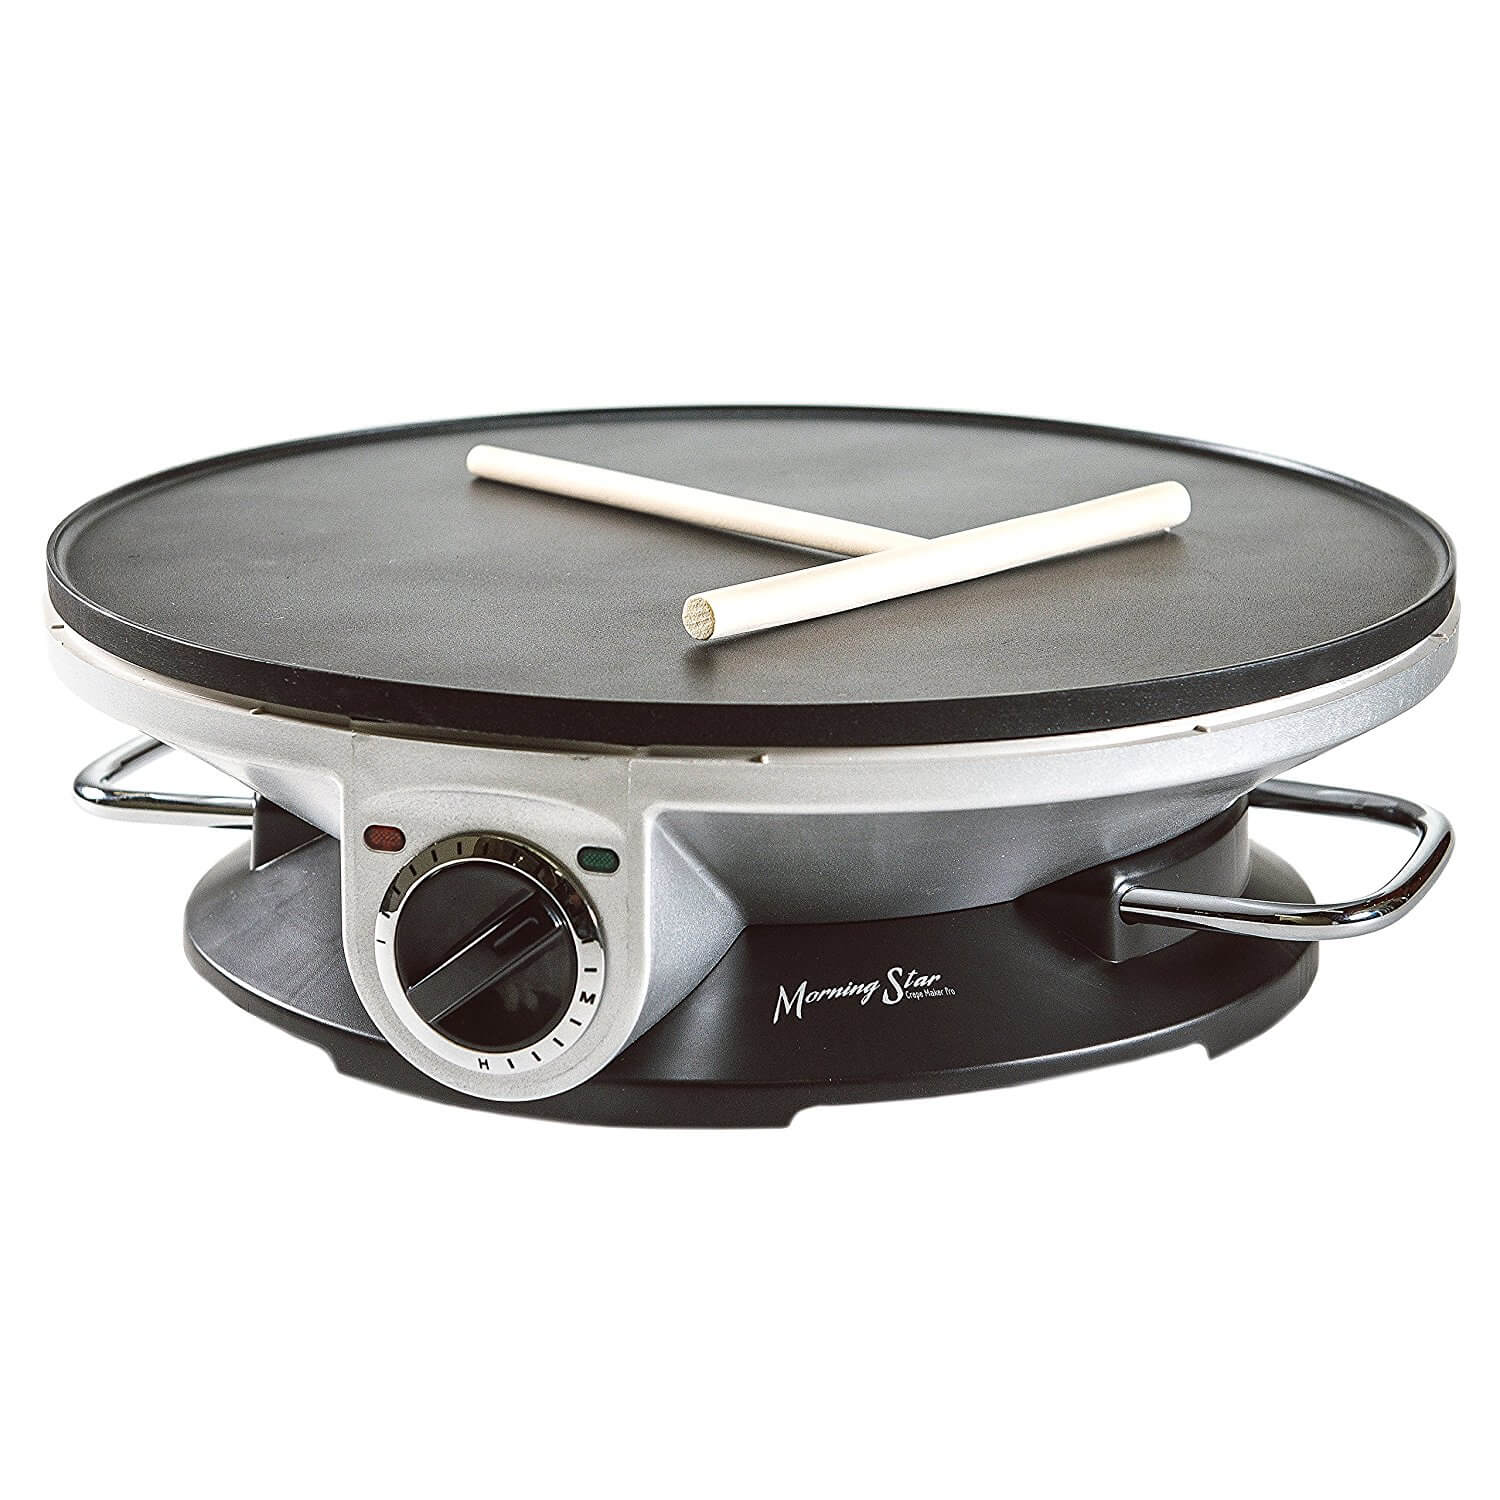 Morning Star - Crepe Maker Pro - 13 Inch Crepe Maker & Electric Griddle